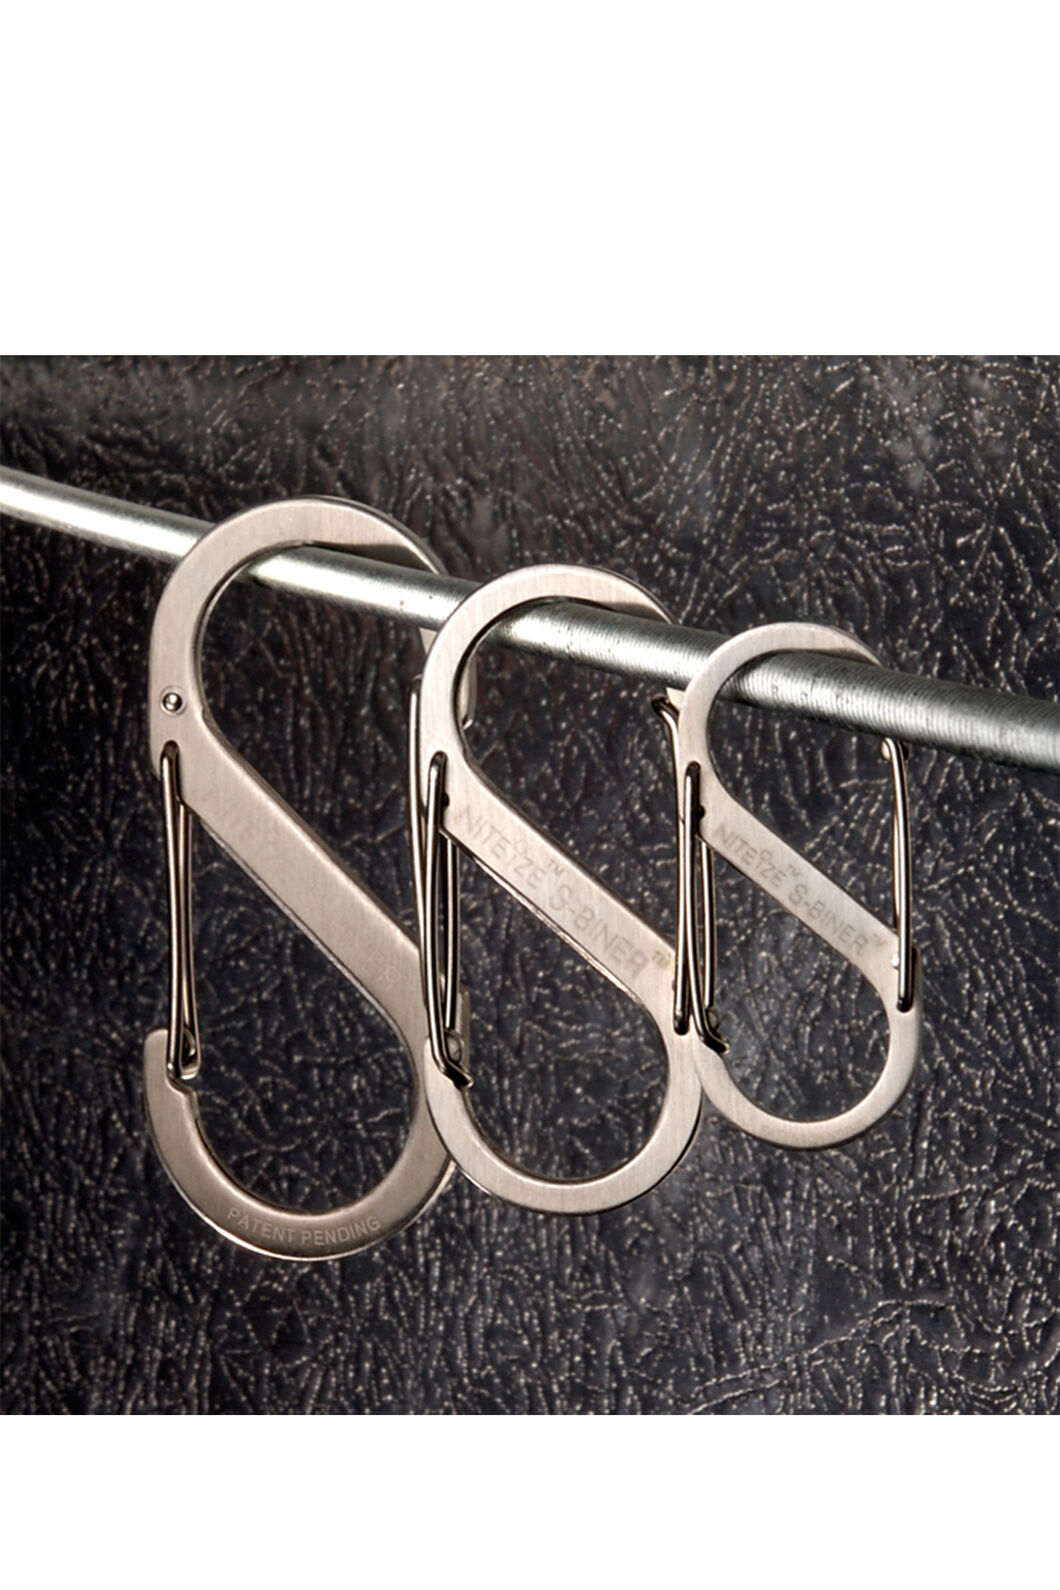 Nite Ize Stainless Steel S-Biner Carabiner 3 Pack, None, hi-res